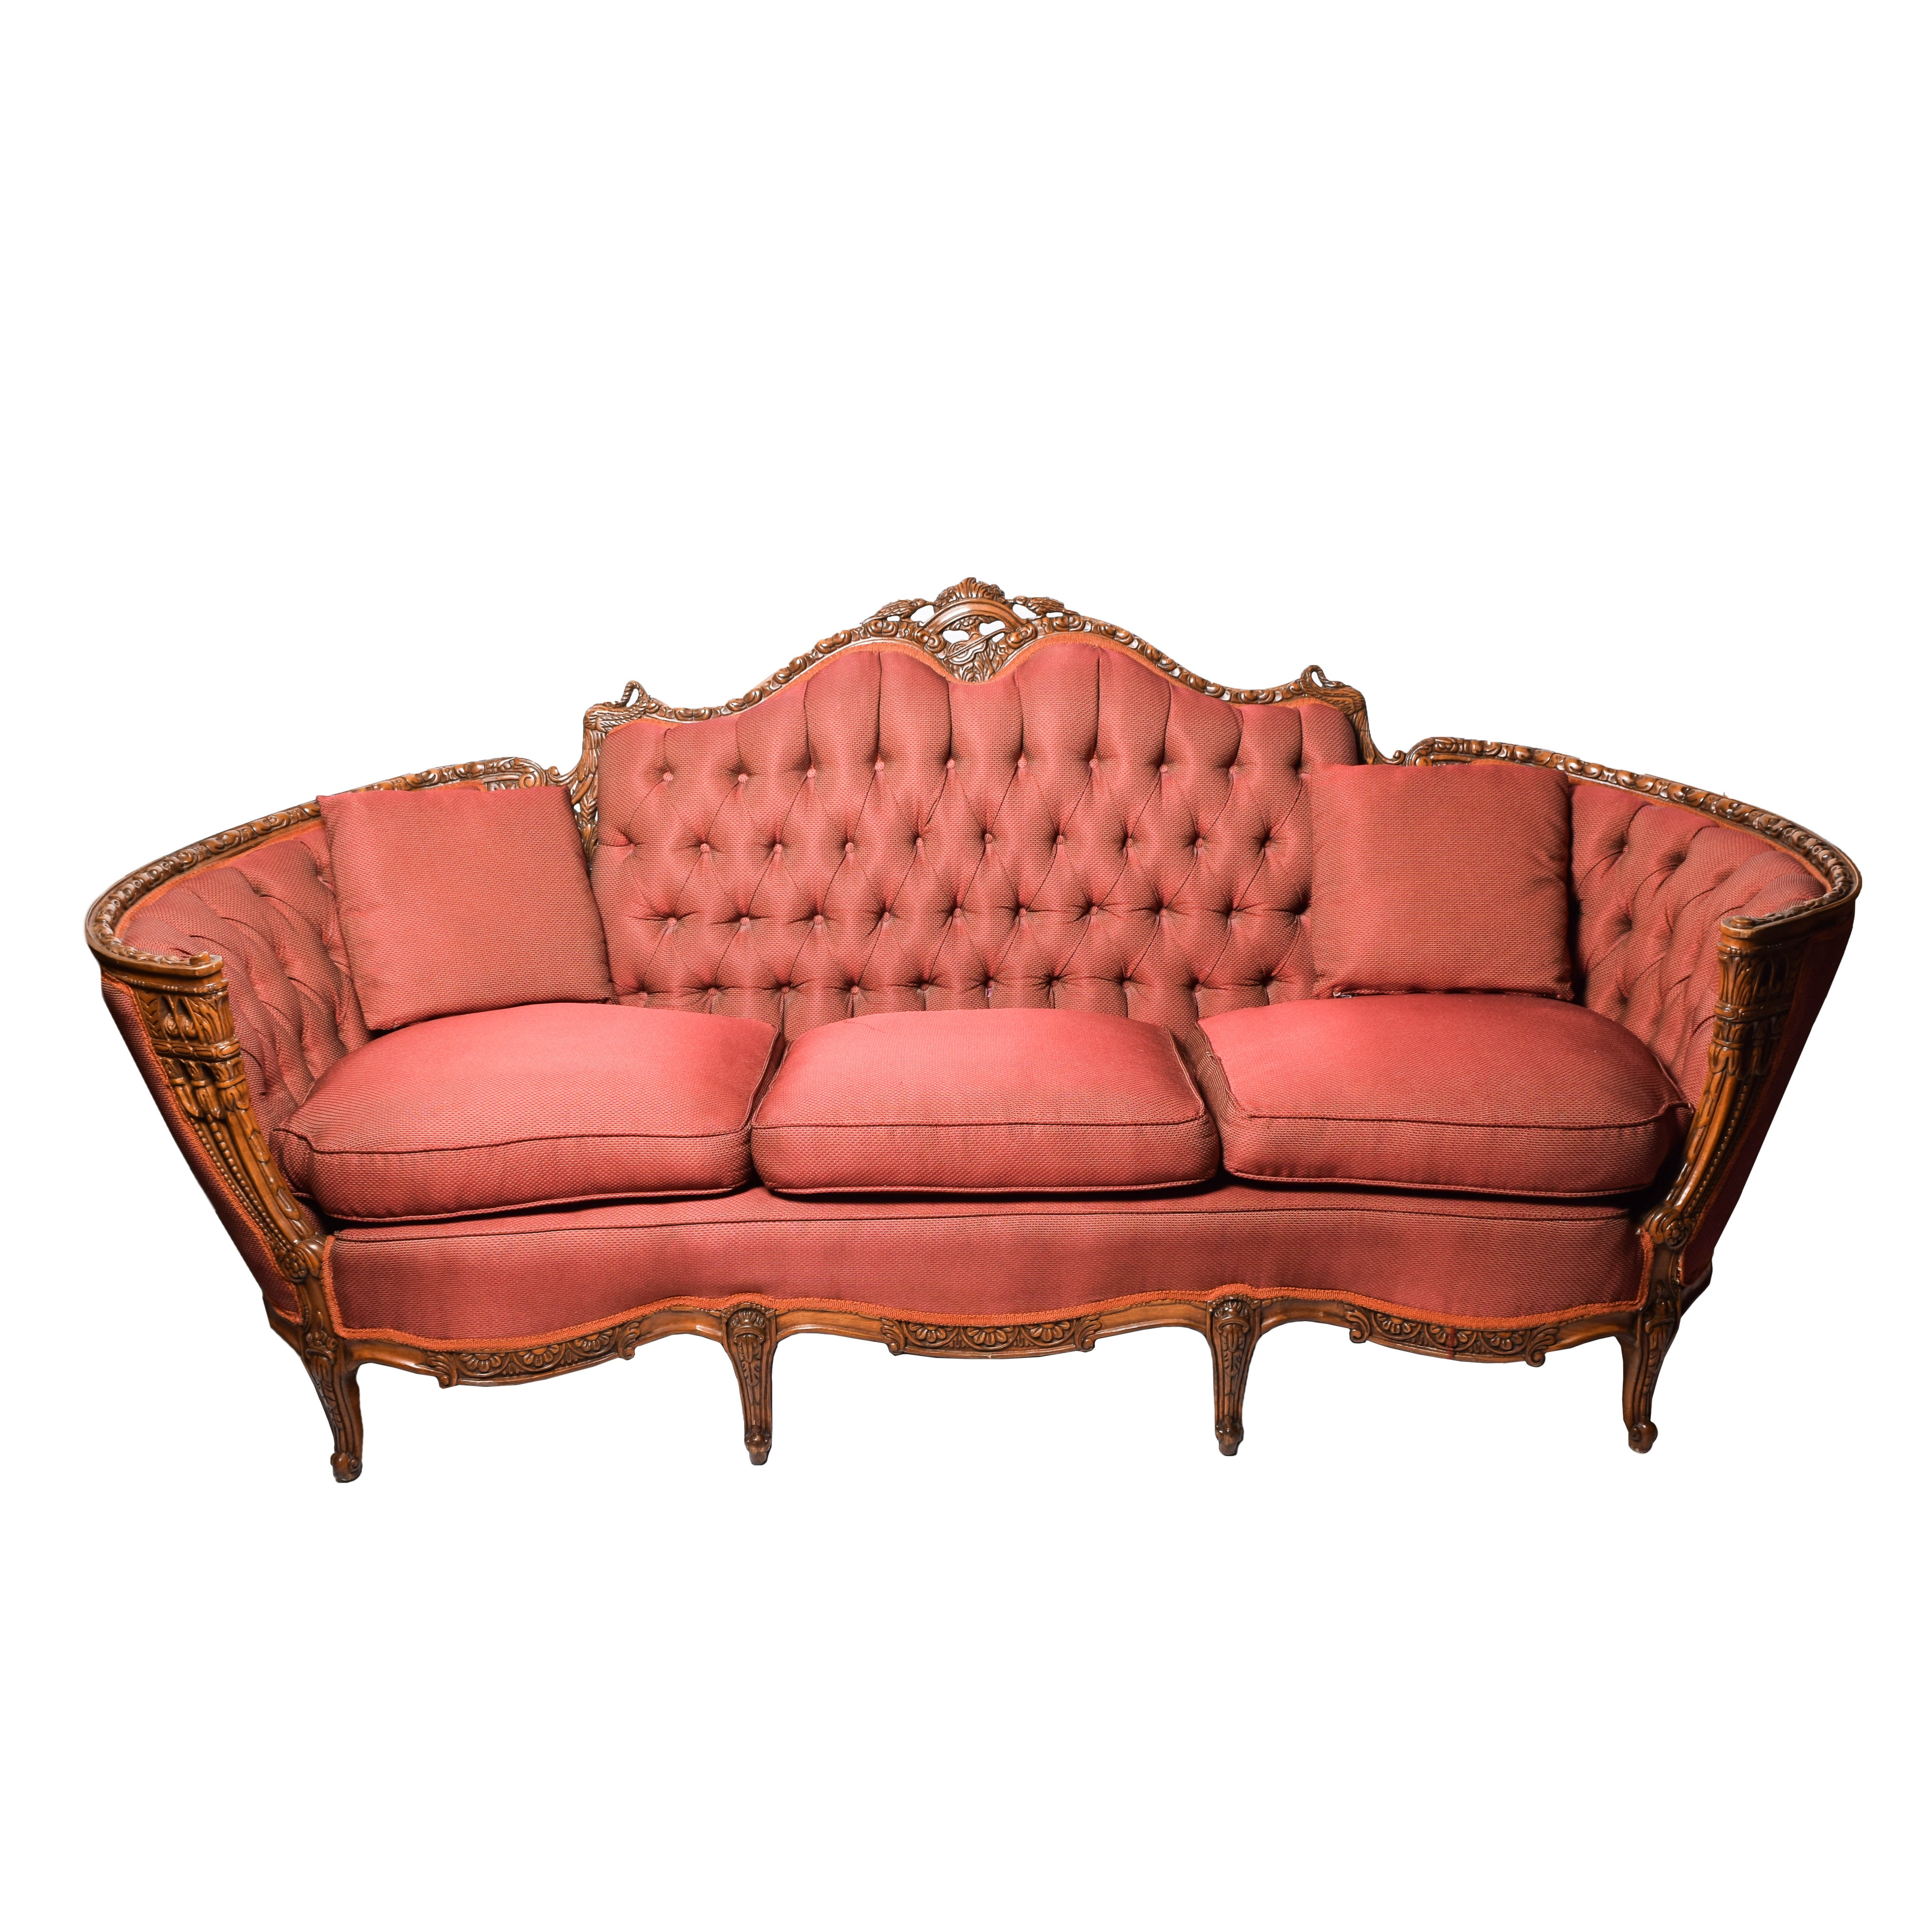 Antique Ornately Carved Victorian Upholstered Sofa